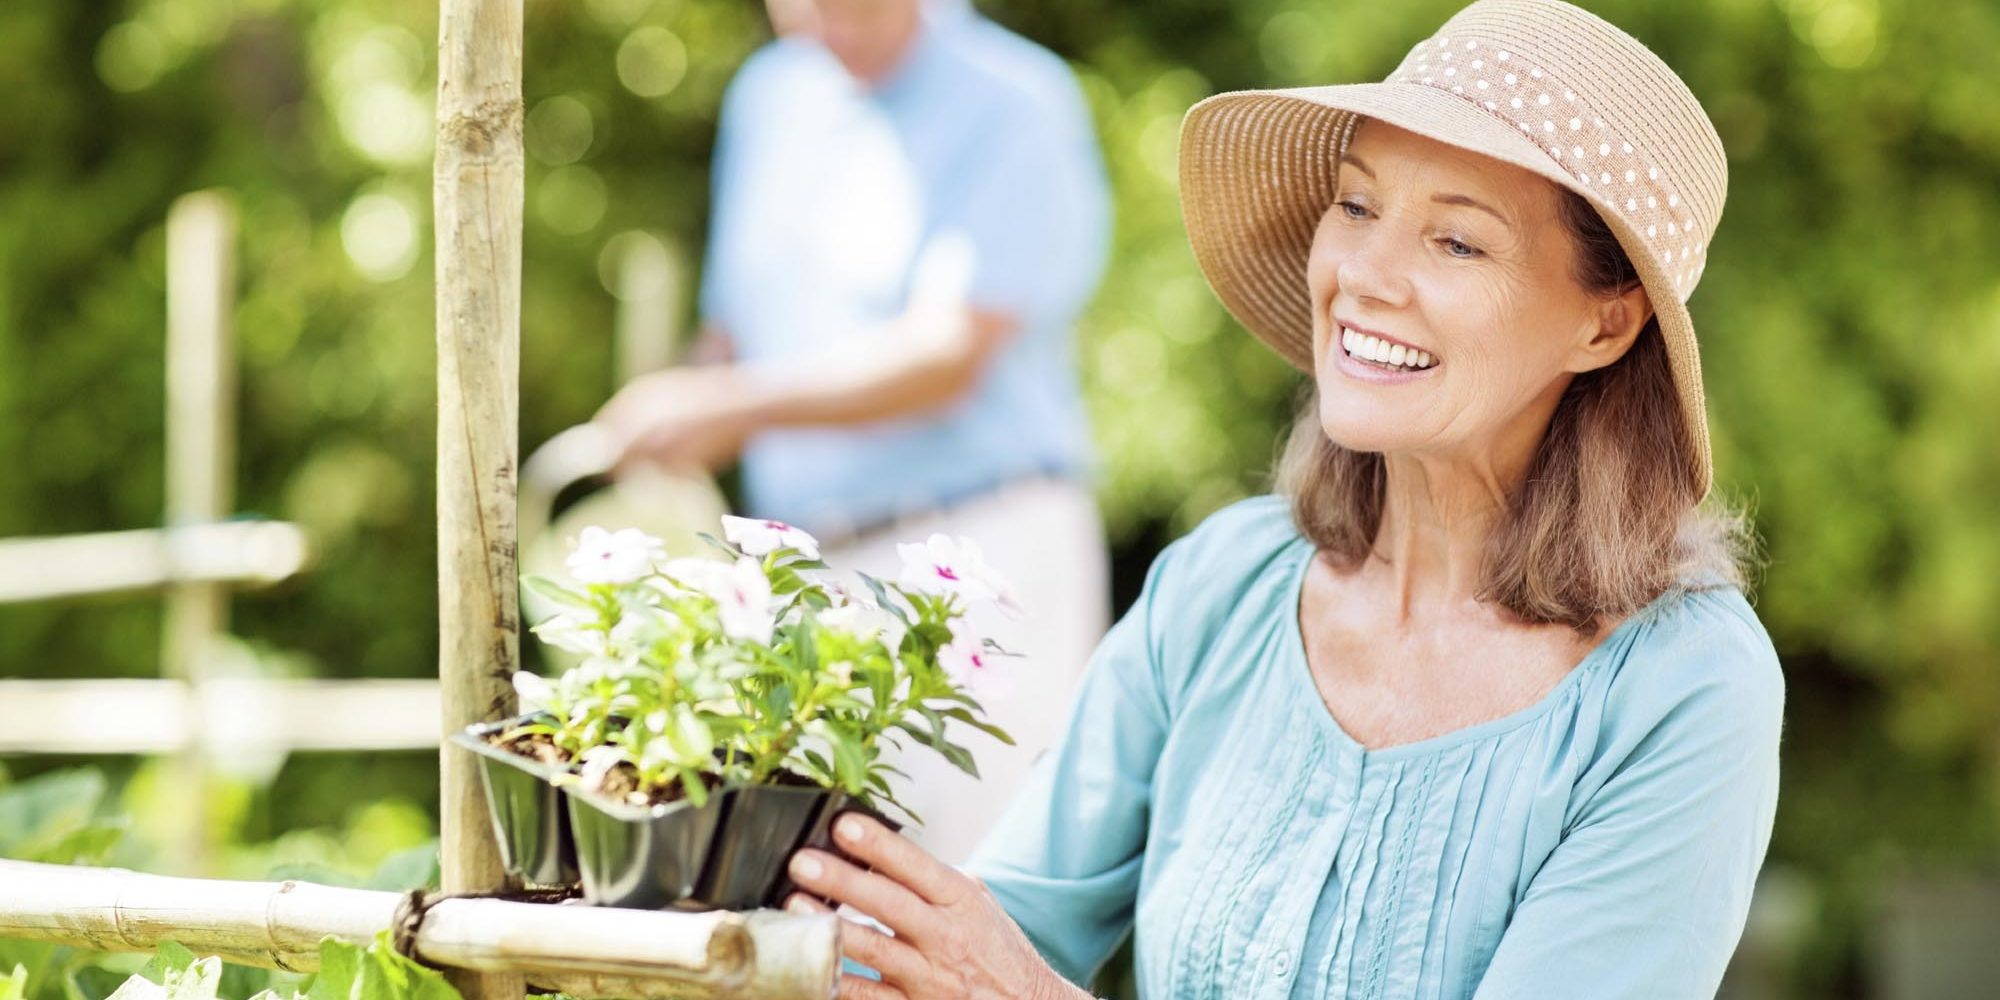 Happy senior woman looking at flower plants while man watering in background at garden. Horizontal shot.